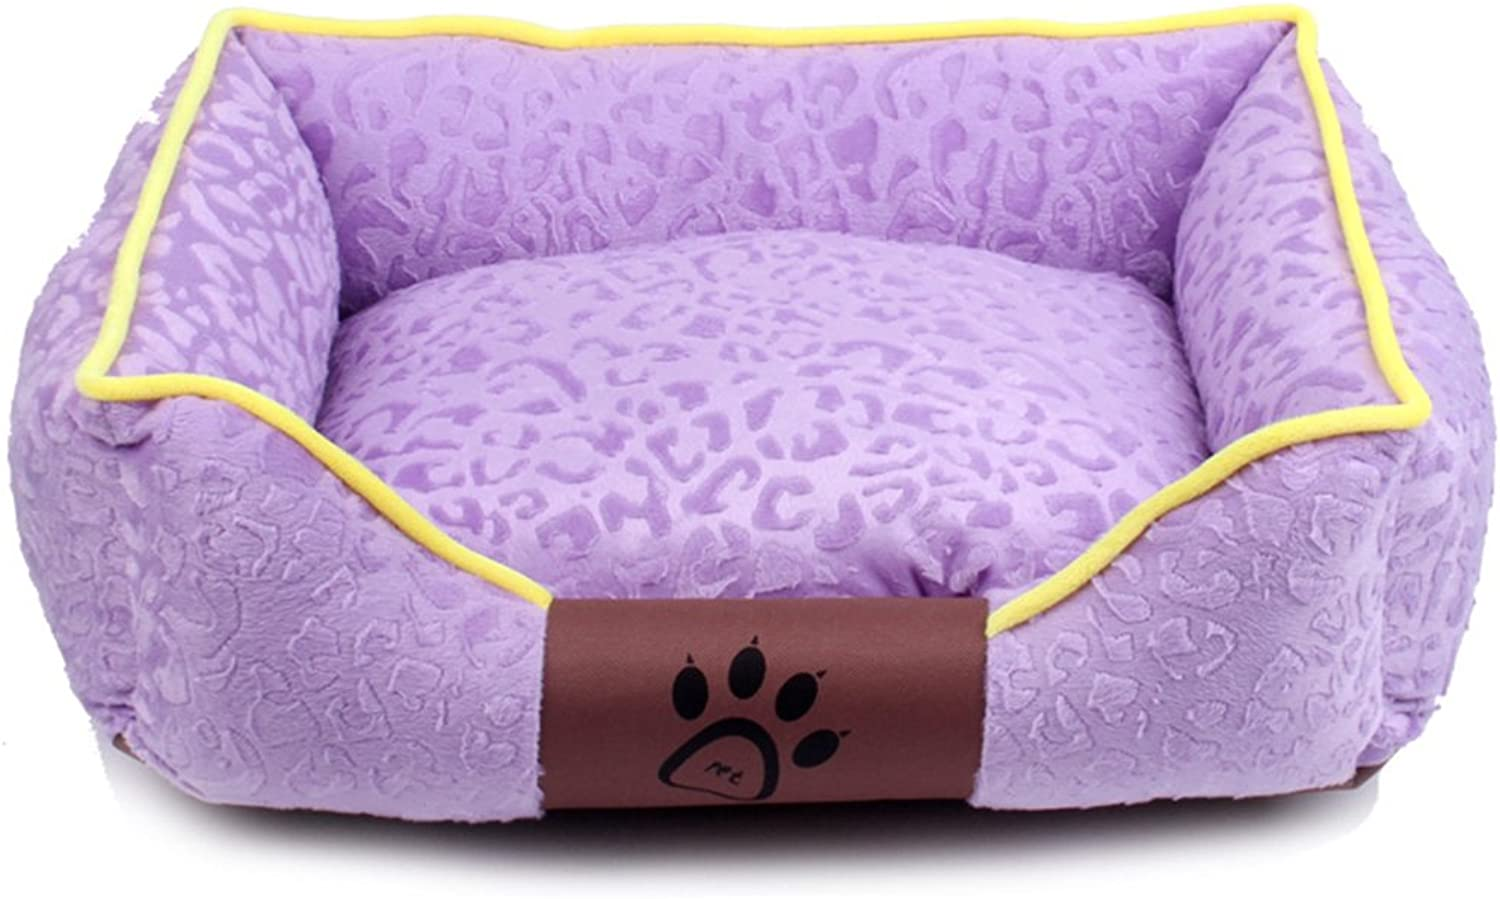 BEDS Dogs Furniture Washable Rectangular Purple Stereo Nesting Dog Hole Pet Cats and Dog (Size   56cm)